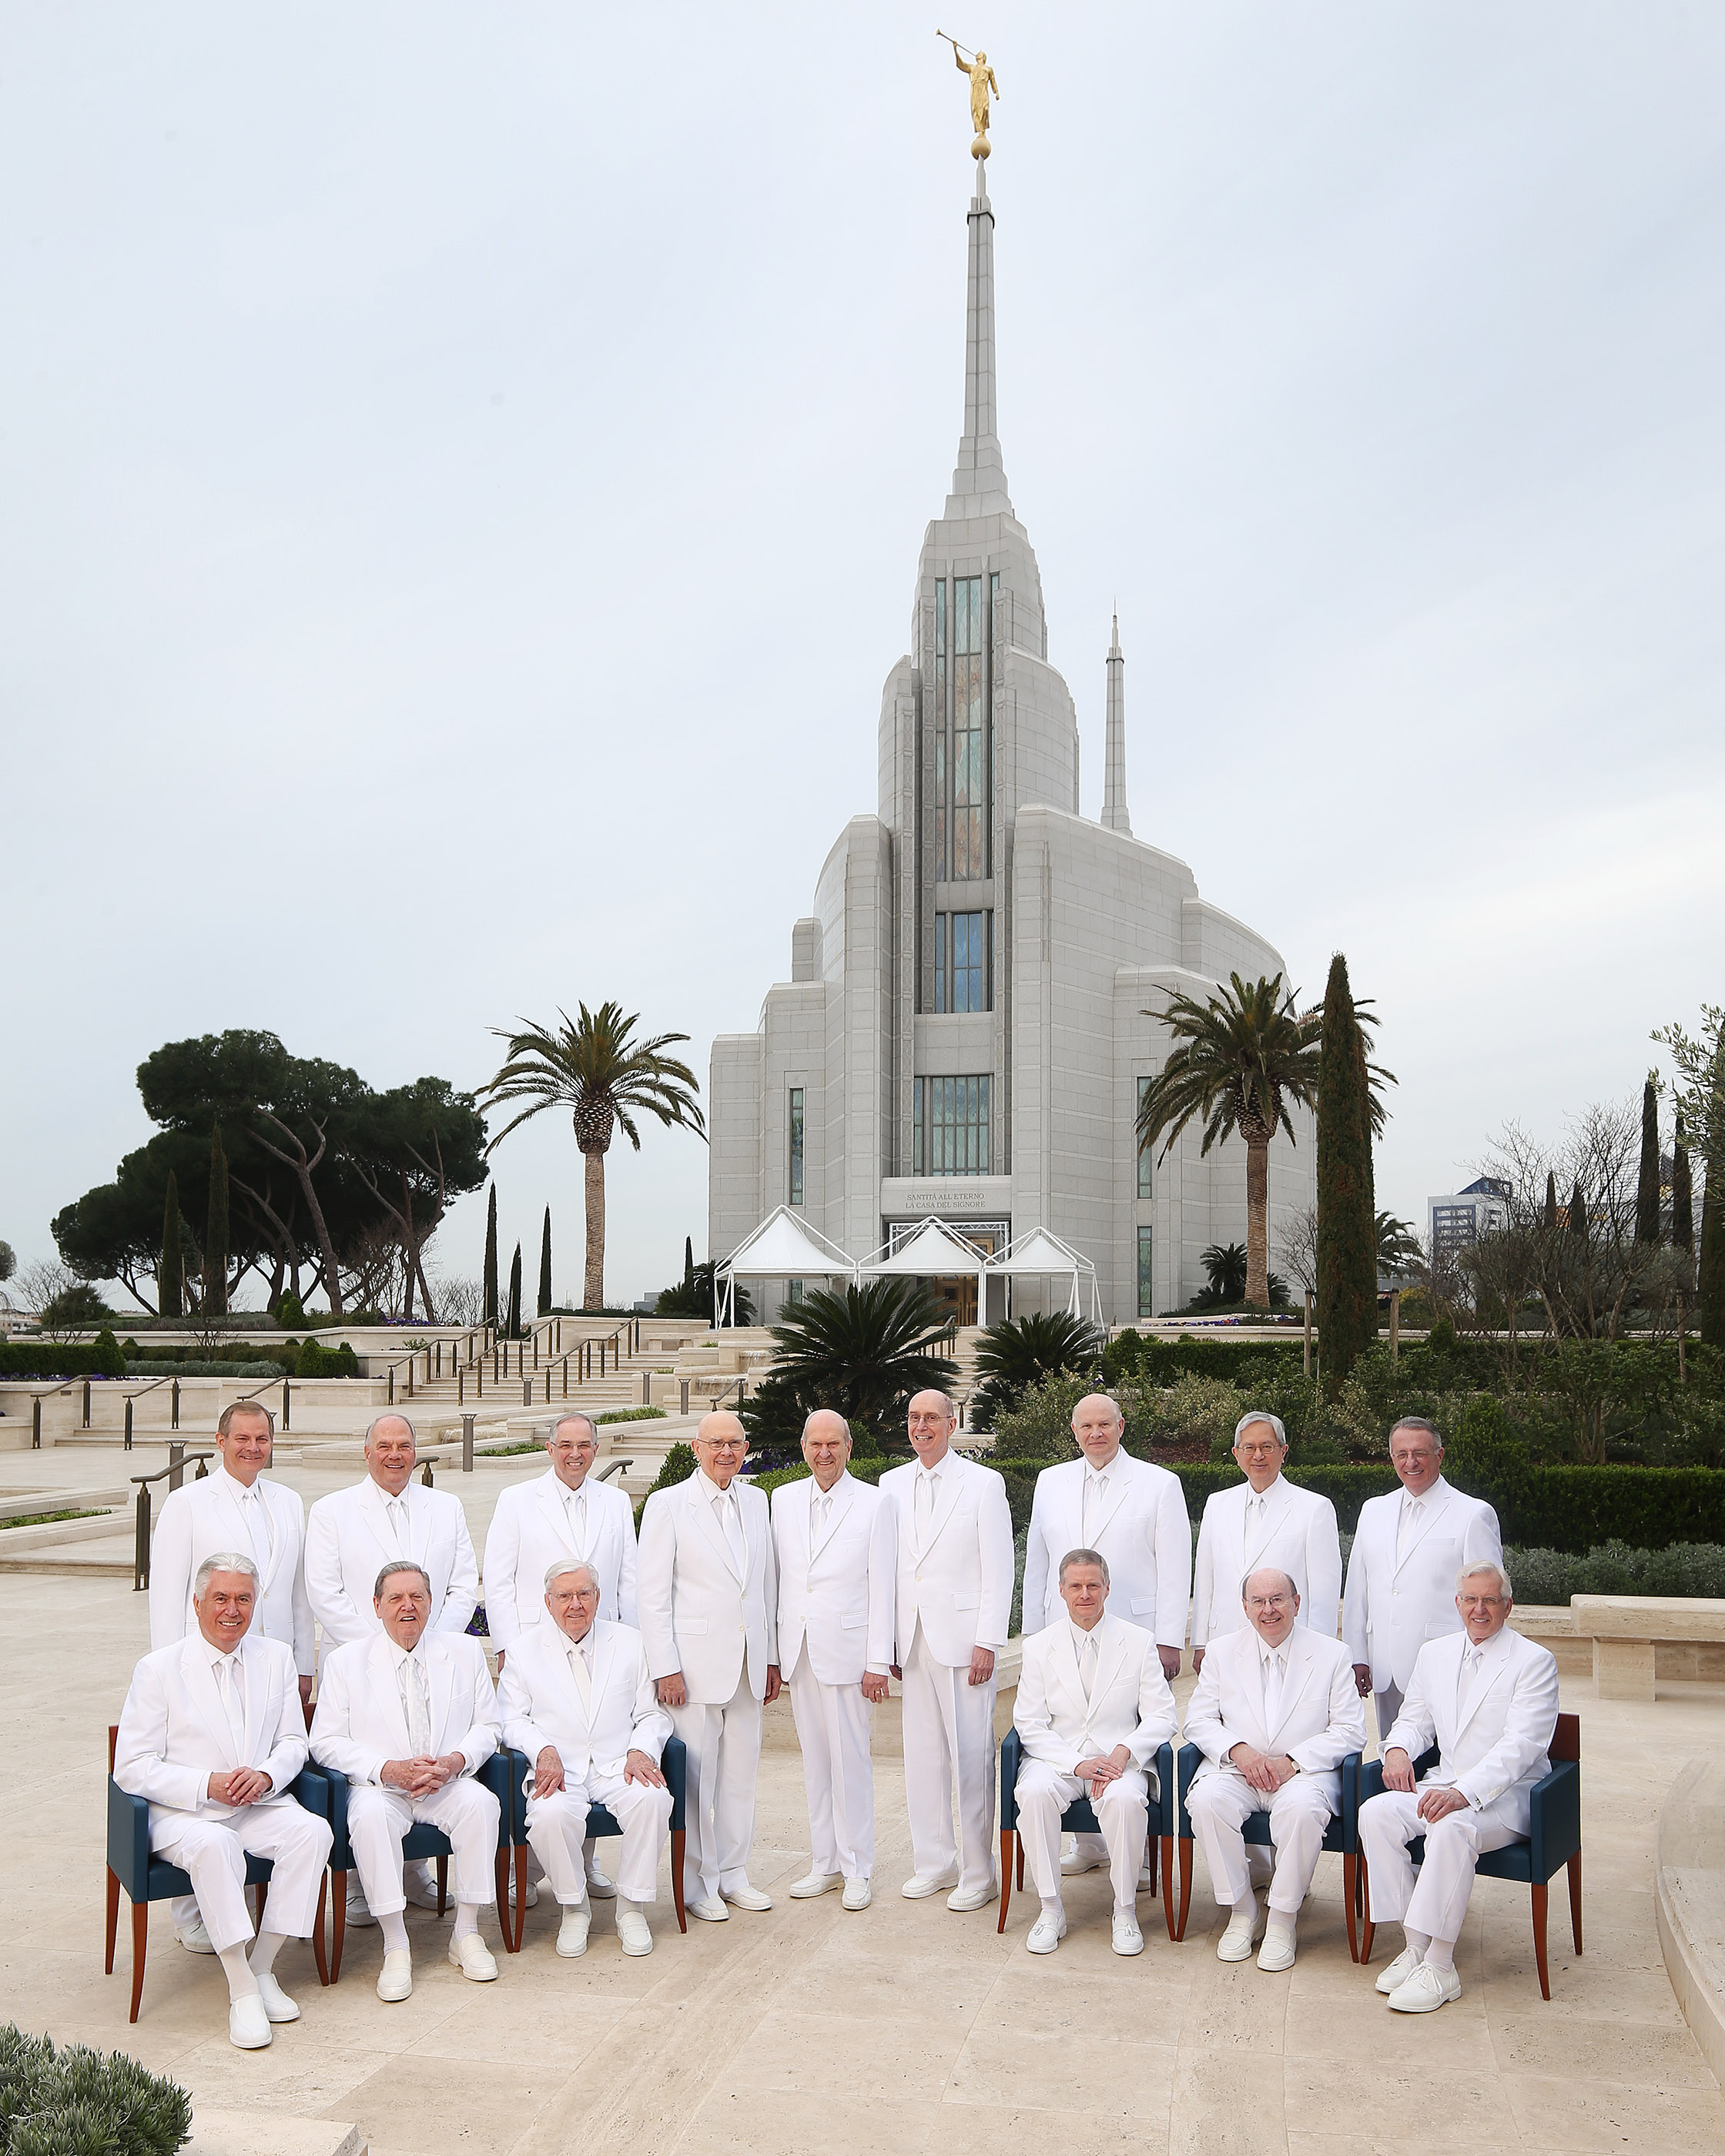 Every member of the First Presidency and the Quorum of the Twelve Apostles of The Church of Jesus Christ of Latter-day Saints, dressed in white temple clothing, pose for an iconic photograph outside the Rome Italy Temple visitors' center in Rome, Italy on Monday, March 11, 2019. Front center are President Russell M. Nelson and his counselors in the First Presidency, President Dallin H. Oaks and President Henry B. Eyring. Also included are members of the Quorum of the Twelve Apostles: President M. Russell Ballard, Elder Jeffrey R. Holland, Elder Dieter F. Uchtdorf, Elder David A. Bednar, Elder Quentin L. Cook, Elder D. Todd Christofferson, Elder Neil L. Andersen, Elder Ronald A. Rasband, Elder Gary E. Stevenson, Elder Dale G. Renlund, Elder Gerrit W. Gong and Elder Ulisses Soares.